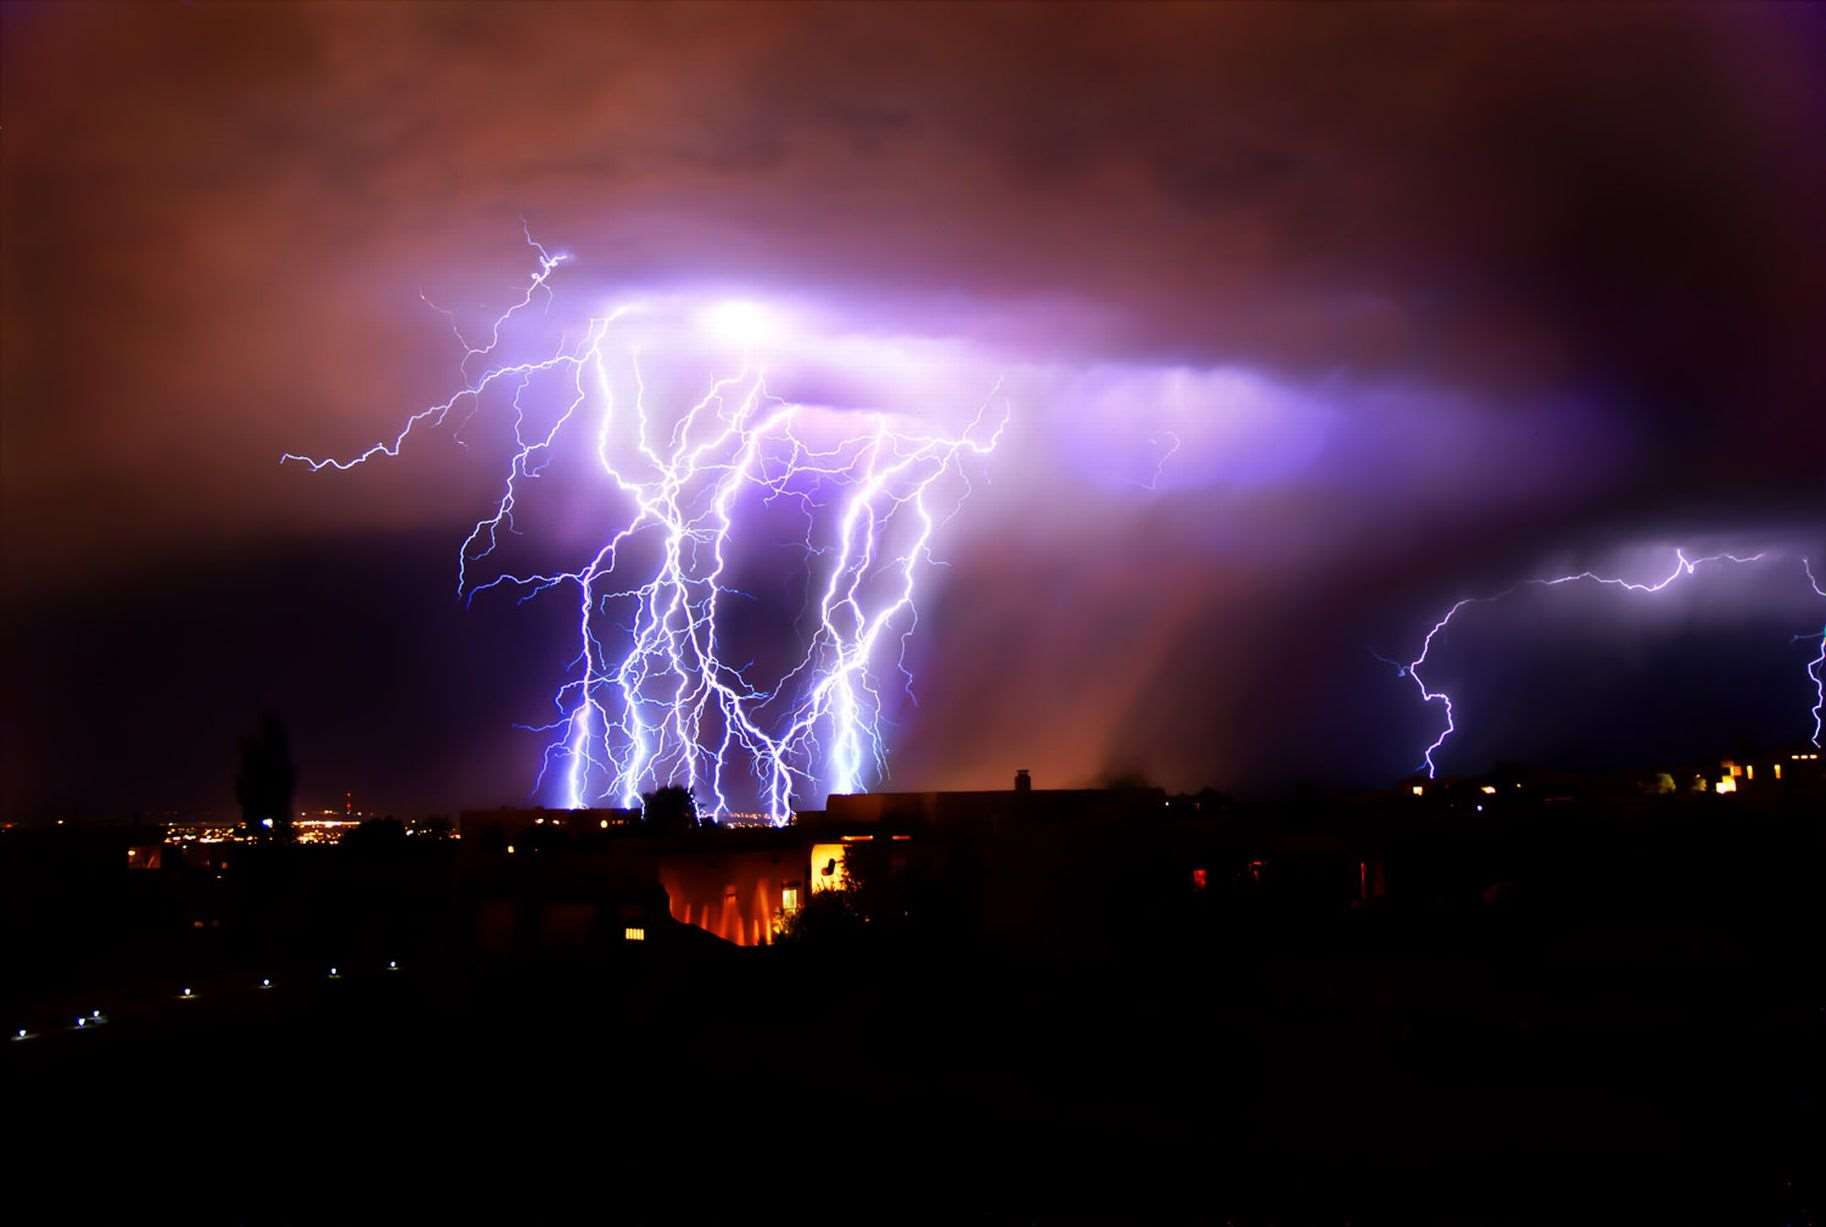 Lightning storm over Albuquerque, New Mexico